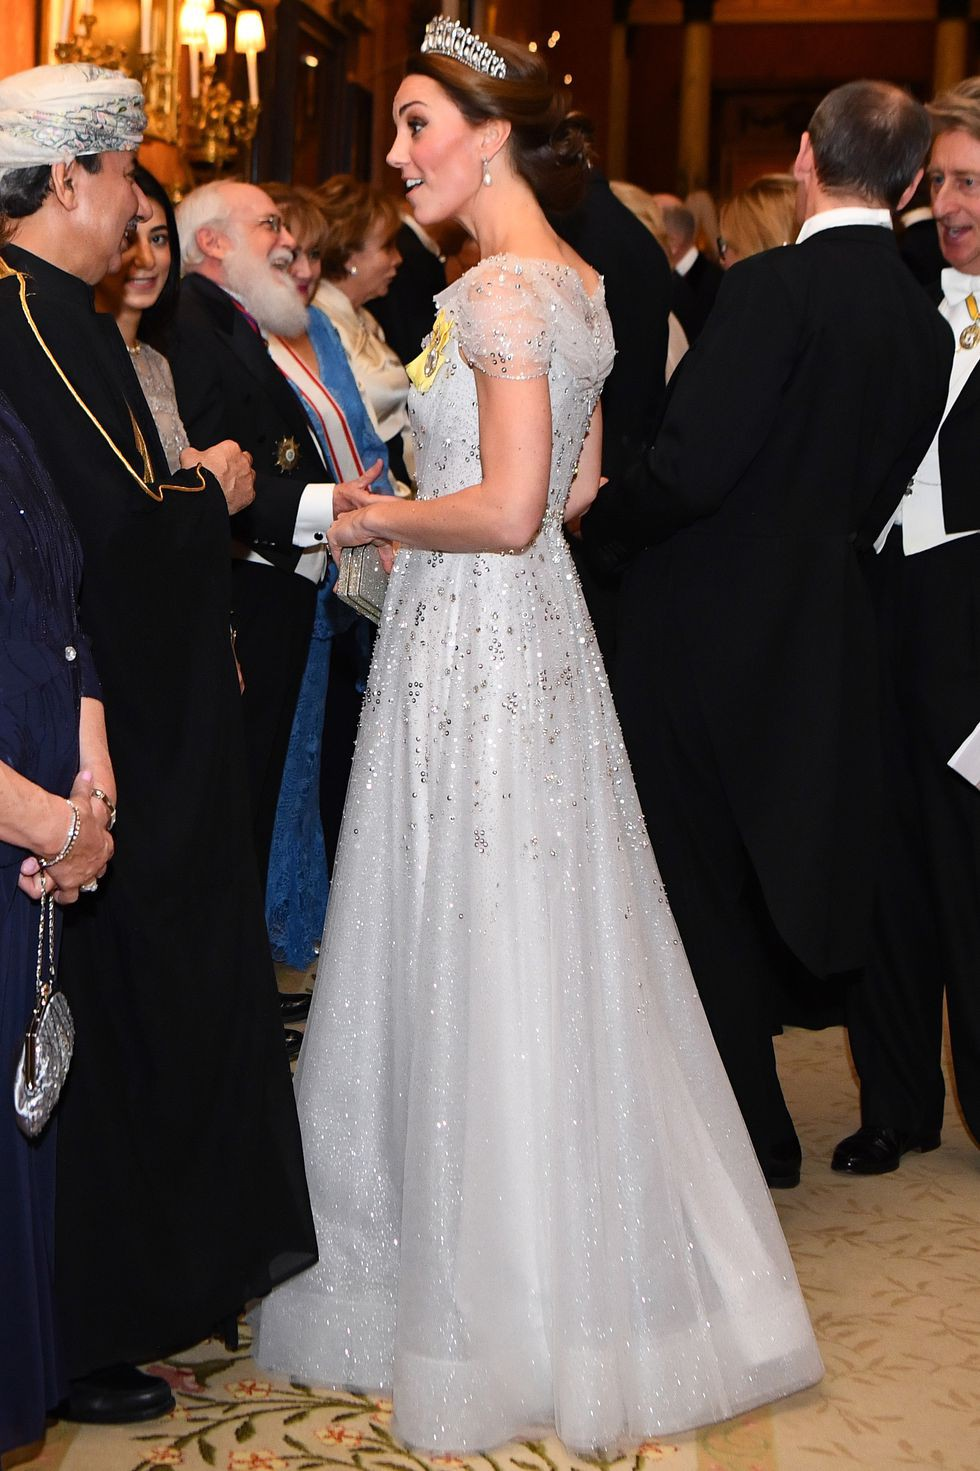 catherine-duchess-of-cambridge-greets-guests-at-an-evening-news-photo-1068503636-1544098152